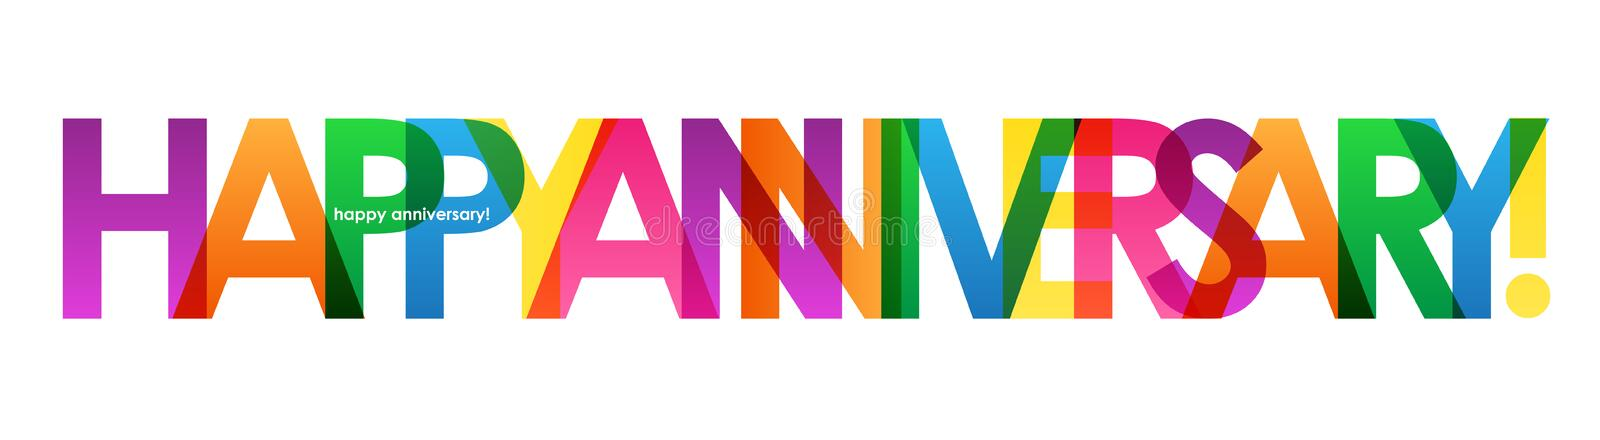 HAPPY ANNIVERSARY colorful overlapping letters vector banner royalty free stock photography